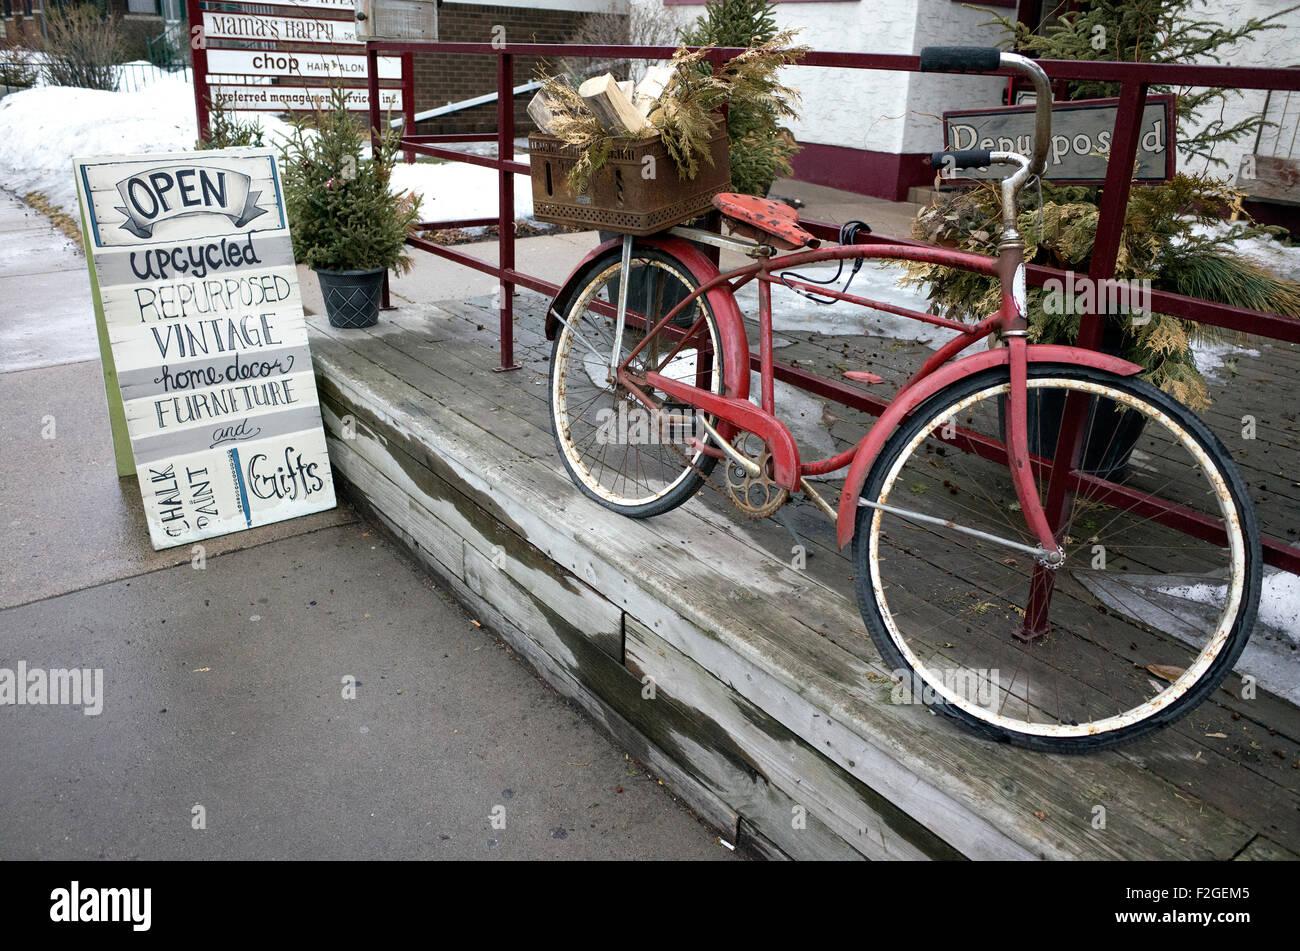 Vintage repurposed bicycle outside Mama's Happy upcycled shop on Grand Ave. St Paul Minnesota MN USA - Stock Image